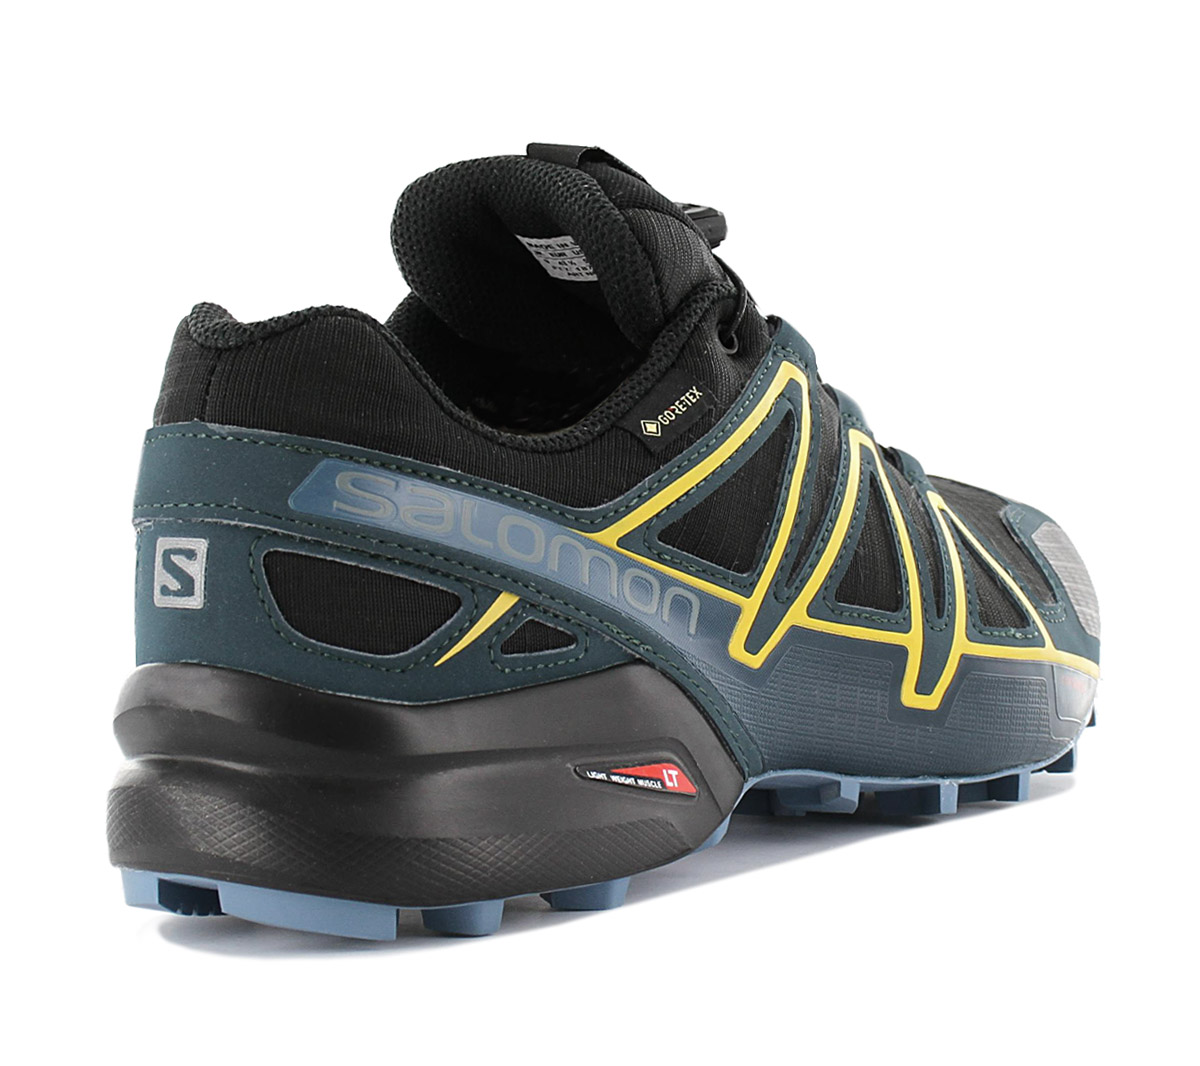 Details about Salomon Speedcross 4 Gtx Gore tex 407861 Trail Running Shoes Sports Shoes New